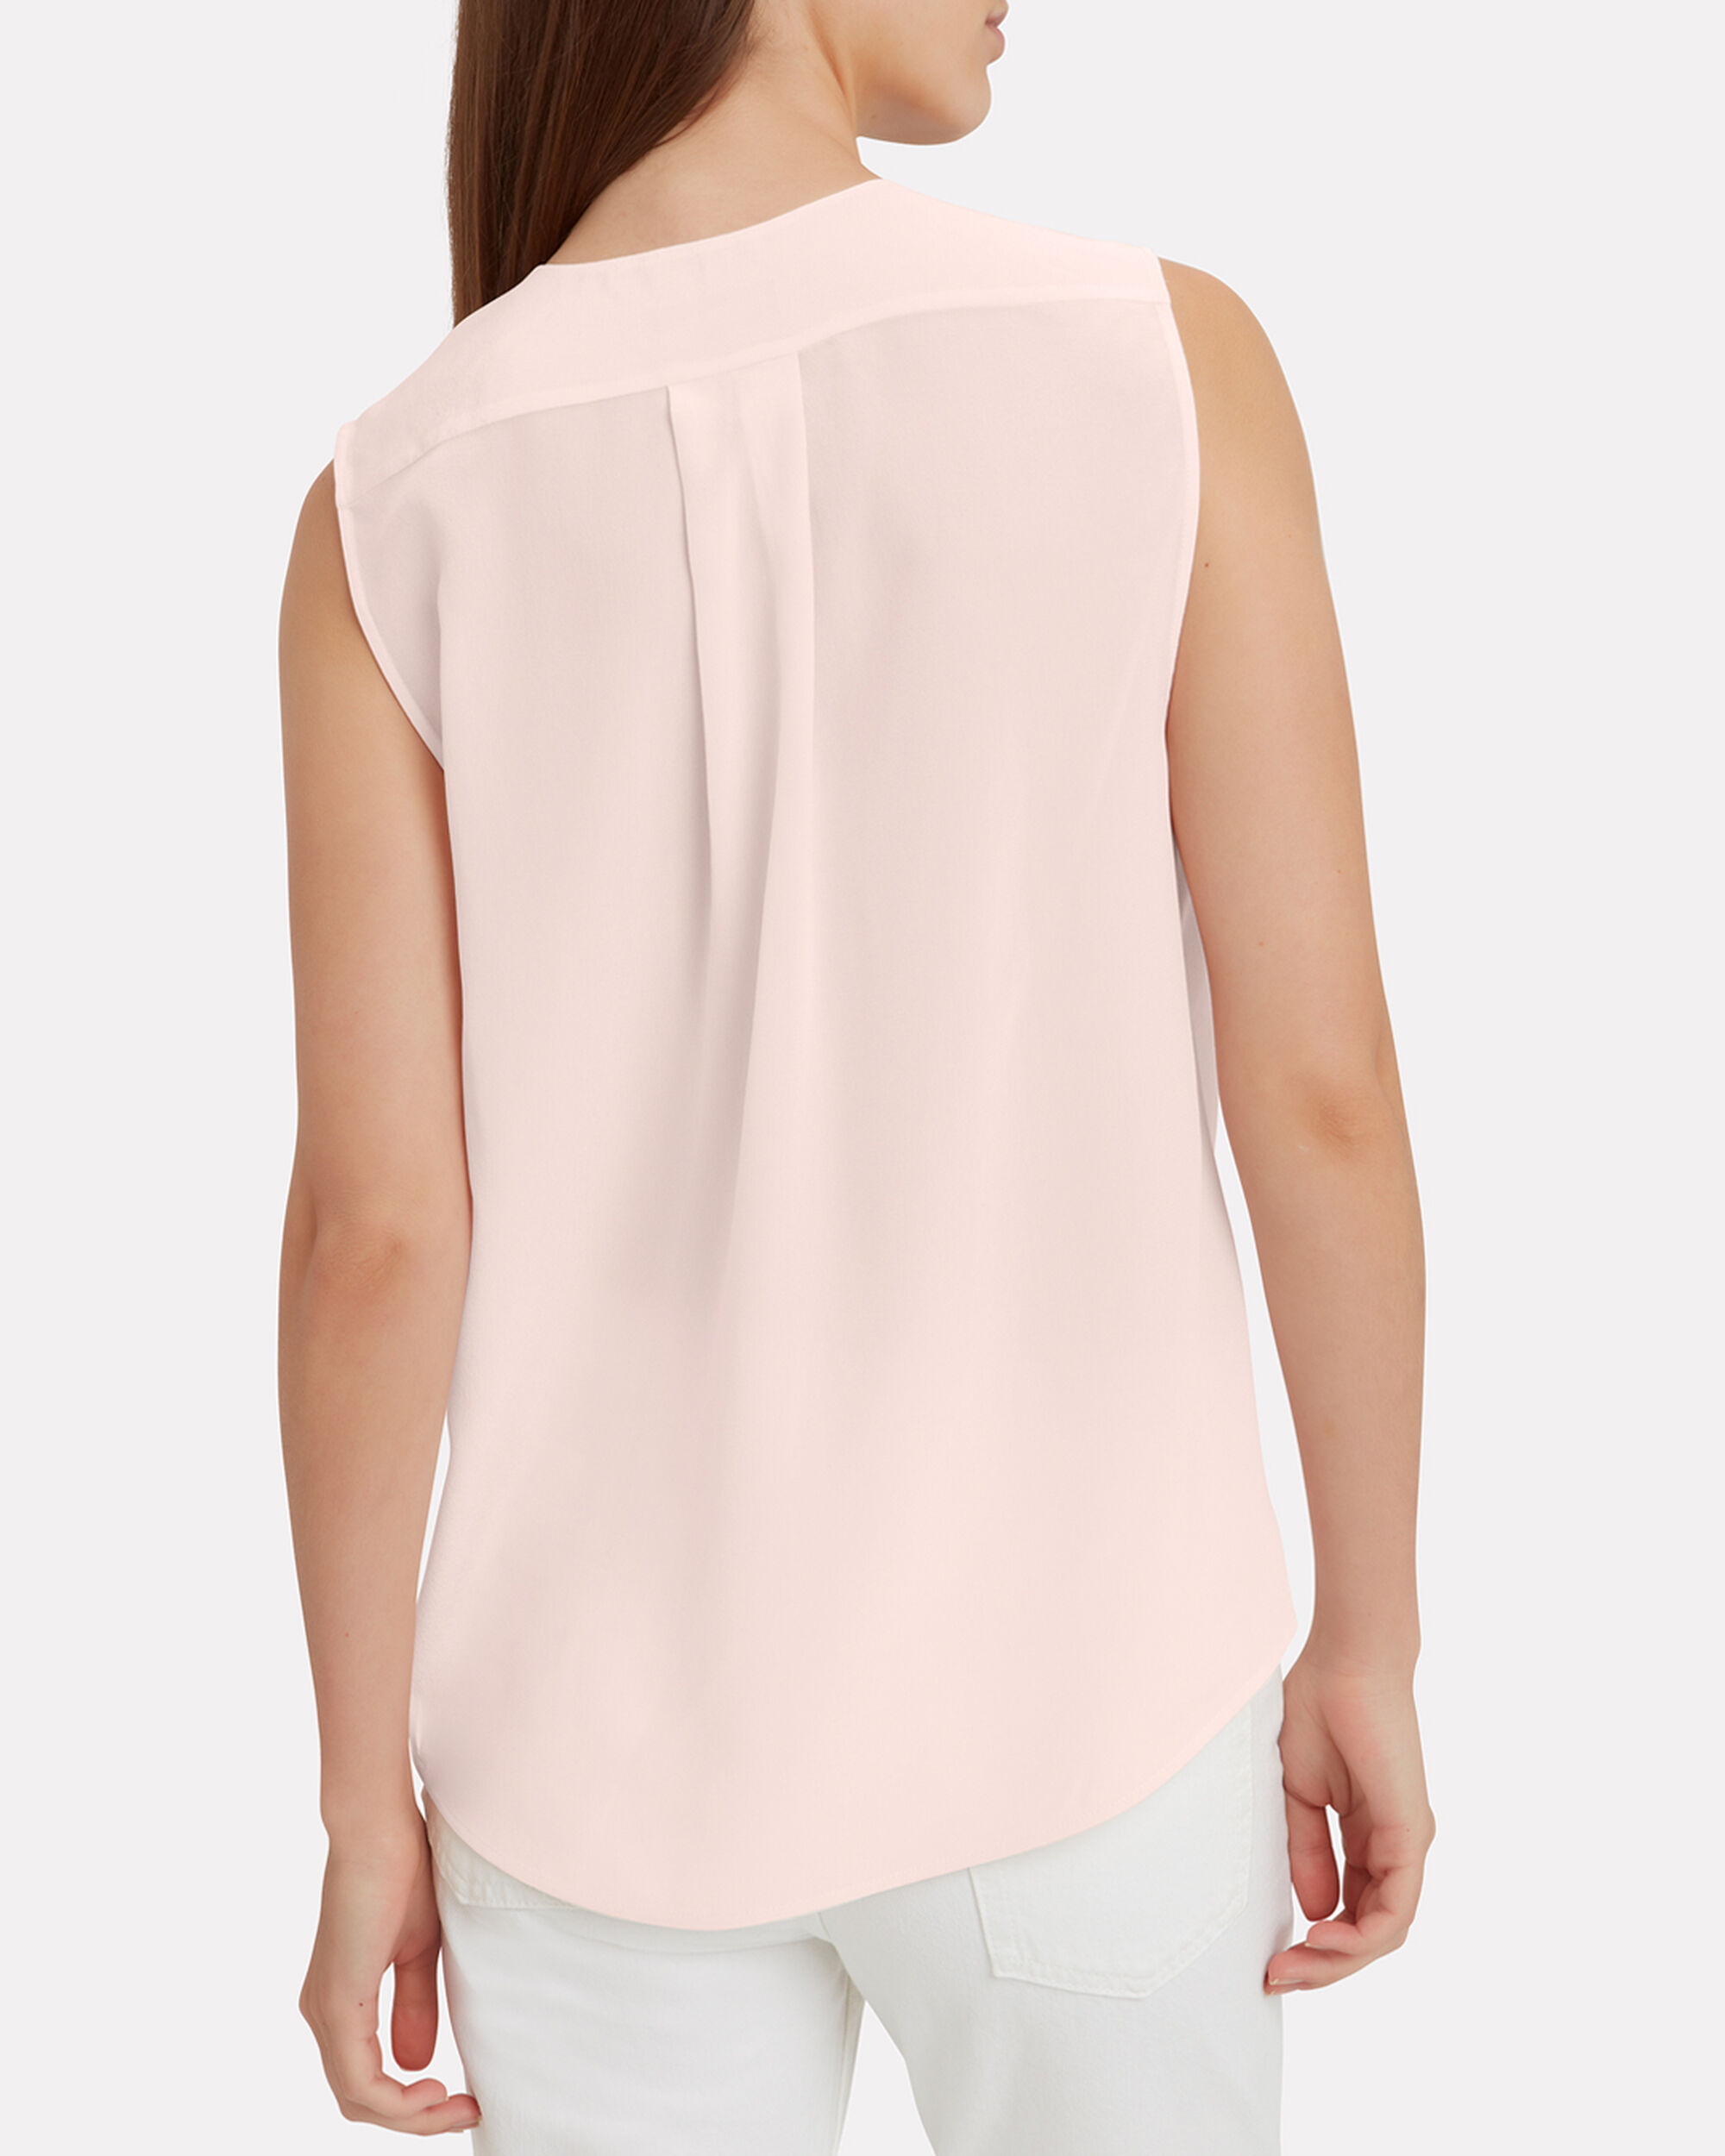 Victor Baby Pink Wrap Blouse, PINK, hi-res